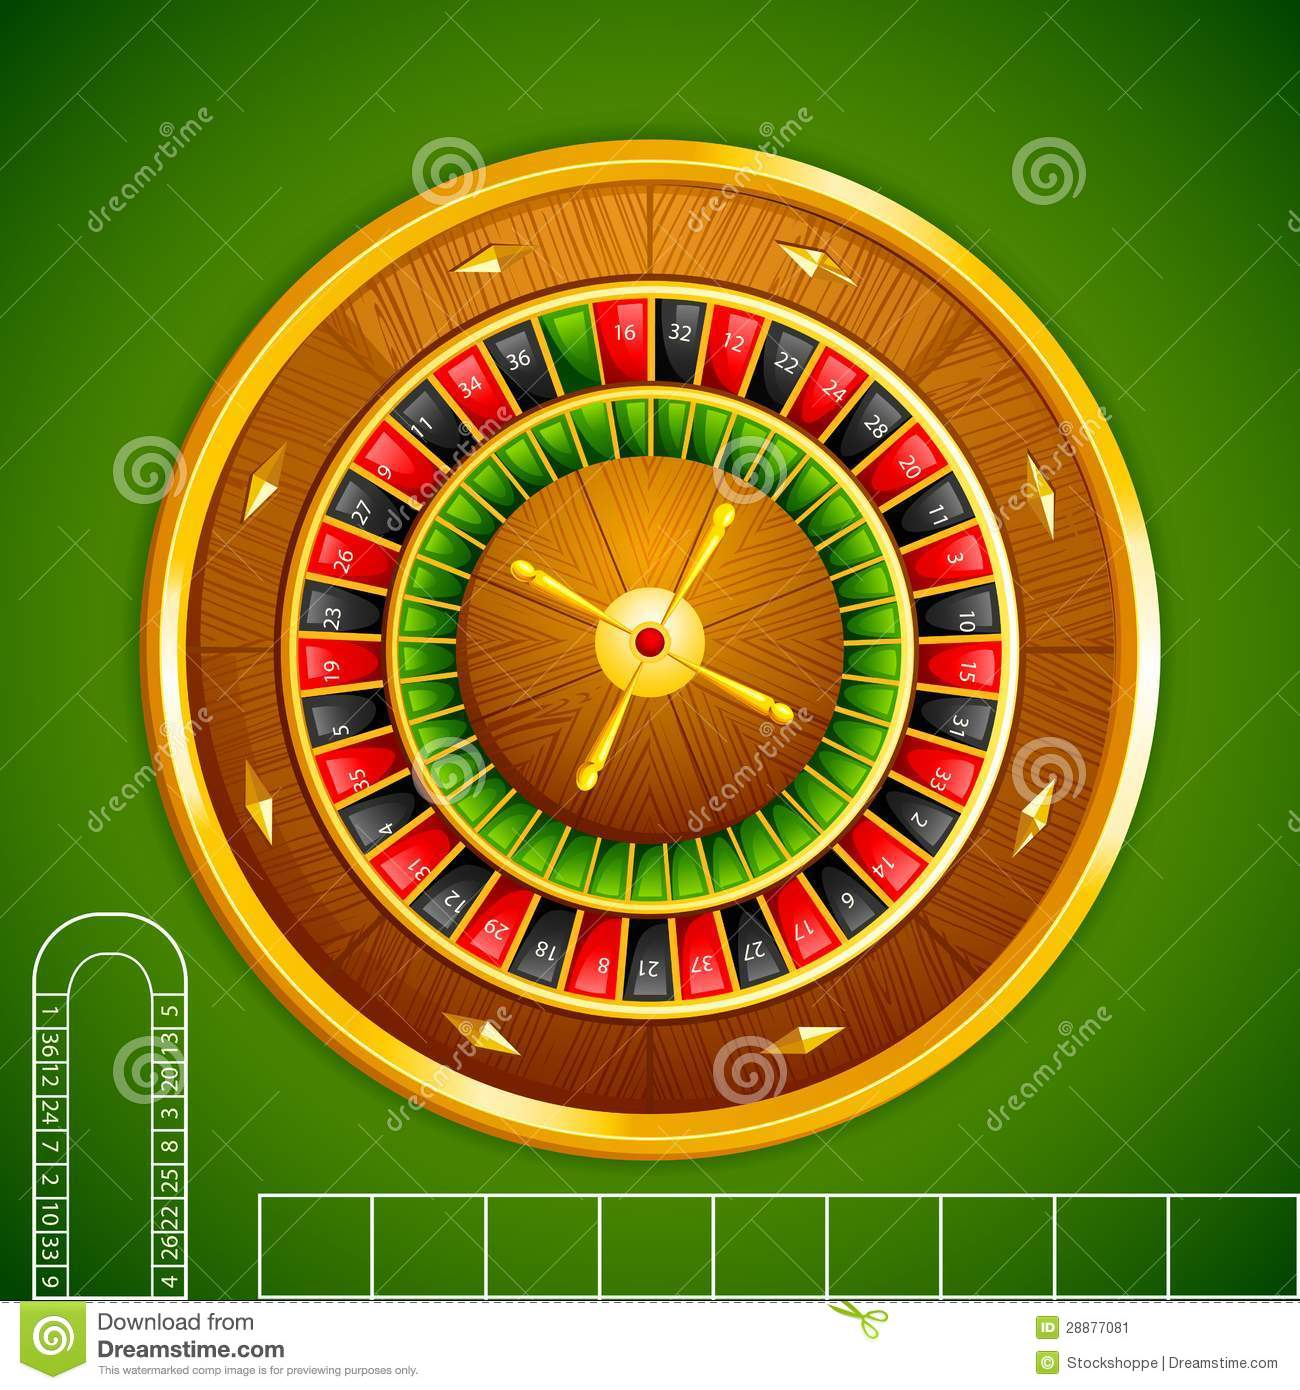 Why is roulette illegal in minnesota poker birthday party supplies